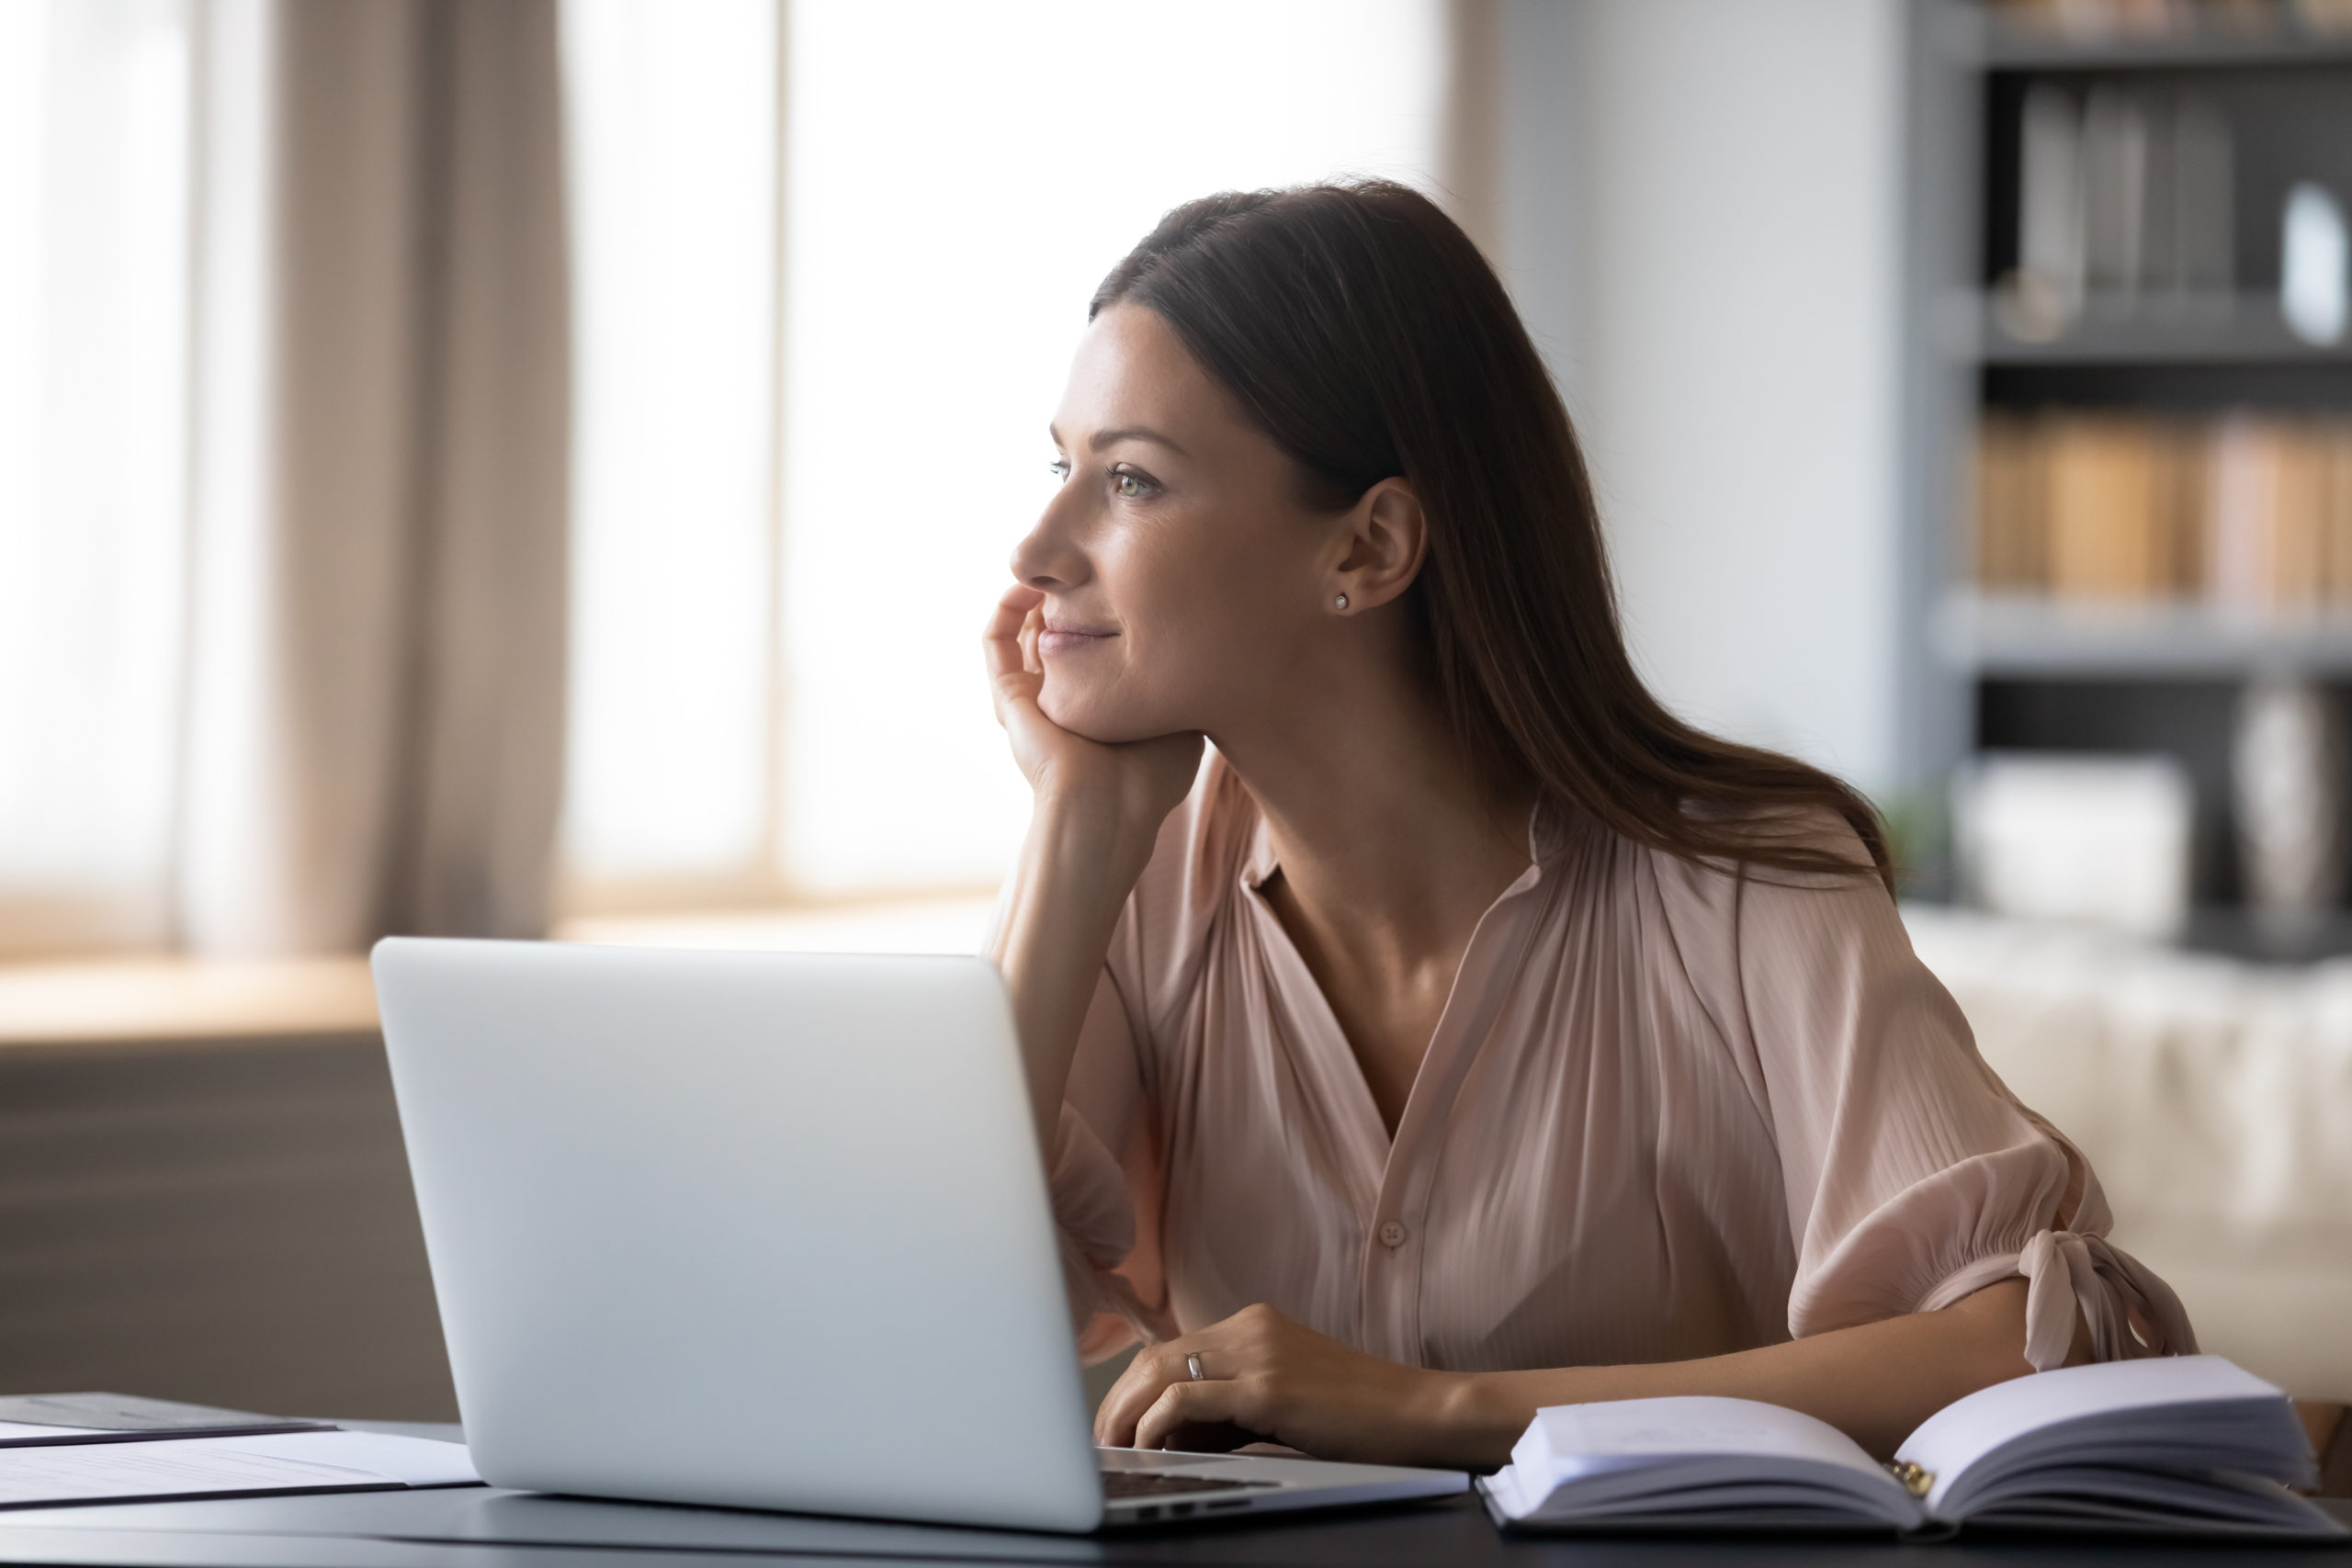 Dreamy,Young,Woman,Pondering,Ideas,,Sitting,At,Desk,With,Laptop,